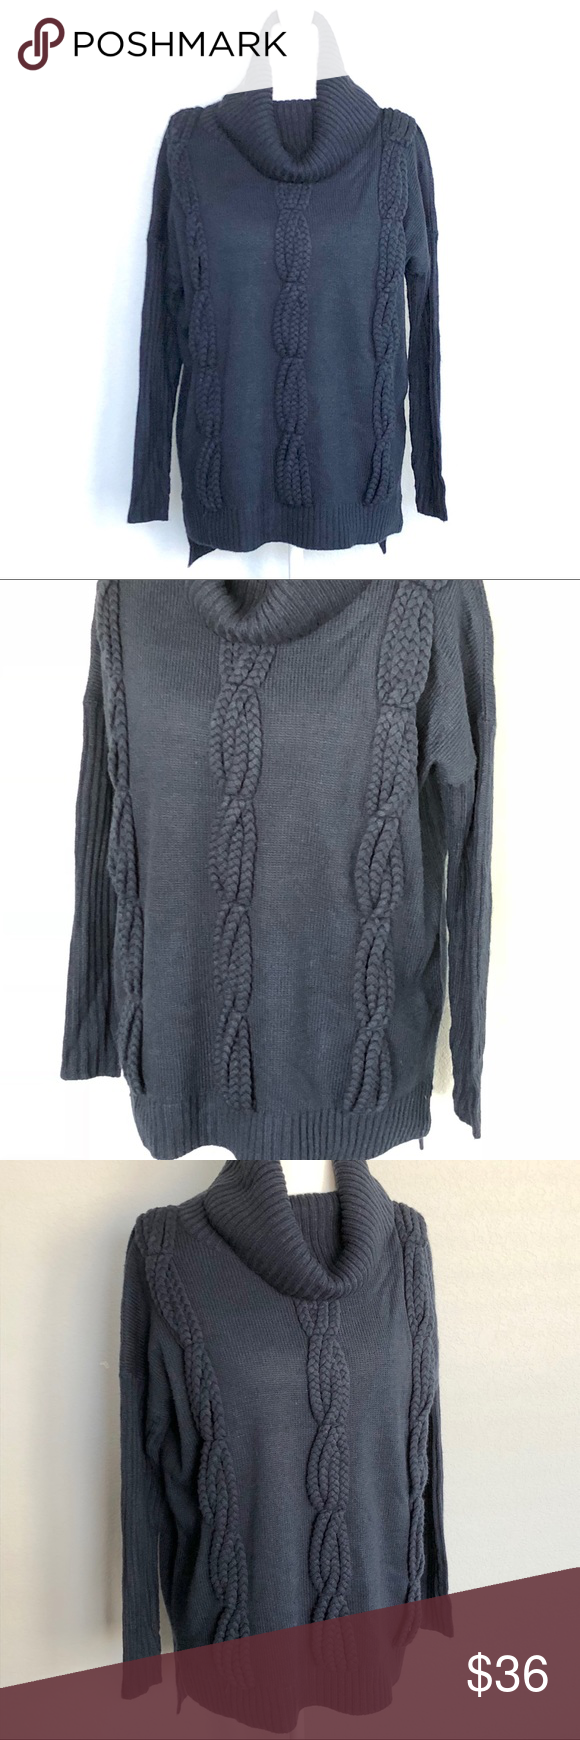 Romeo & Juliet Couture Navy Sweater Amazing knit detailed front ...